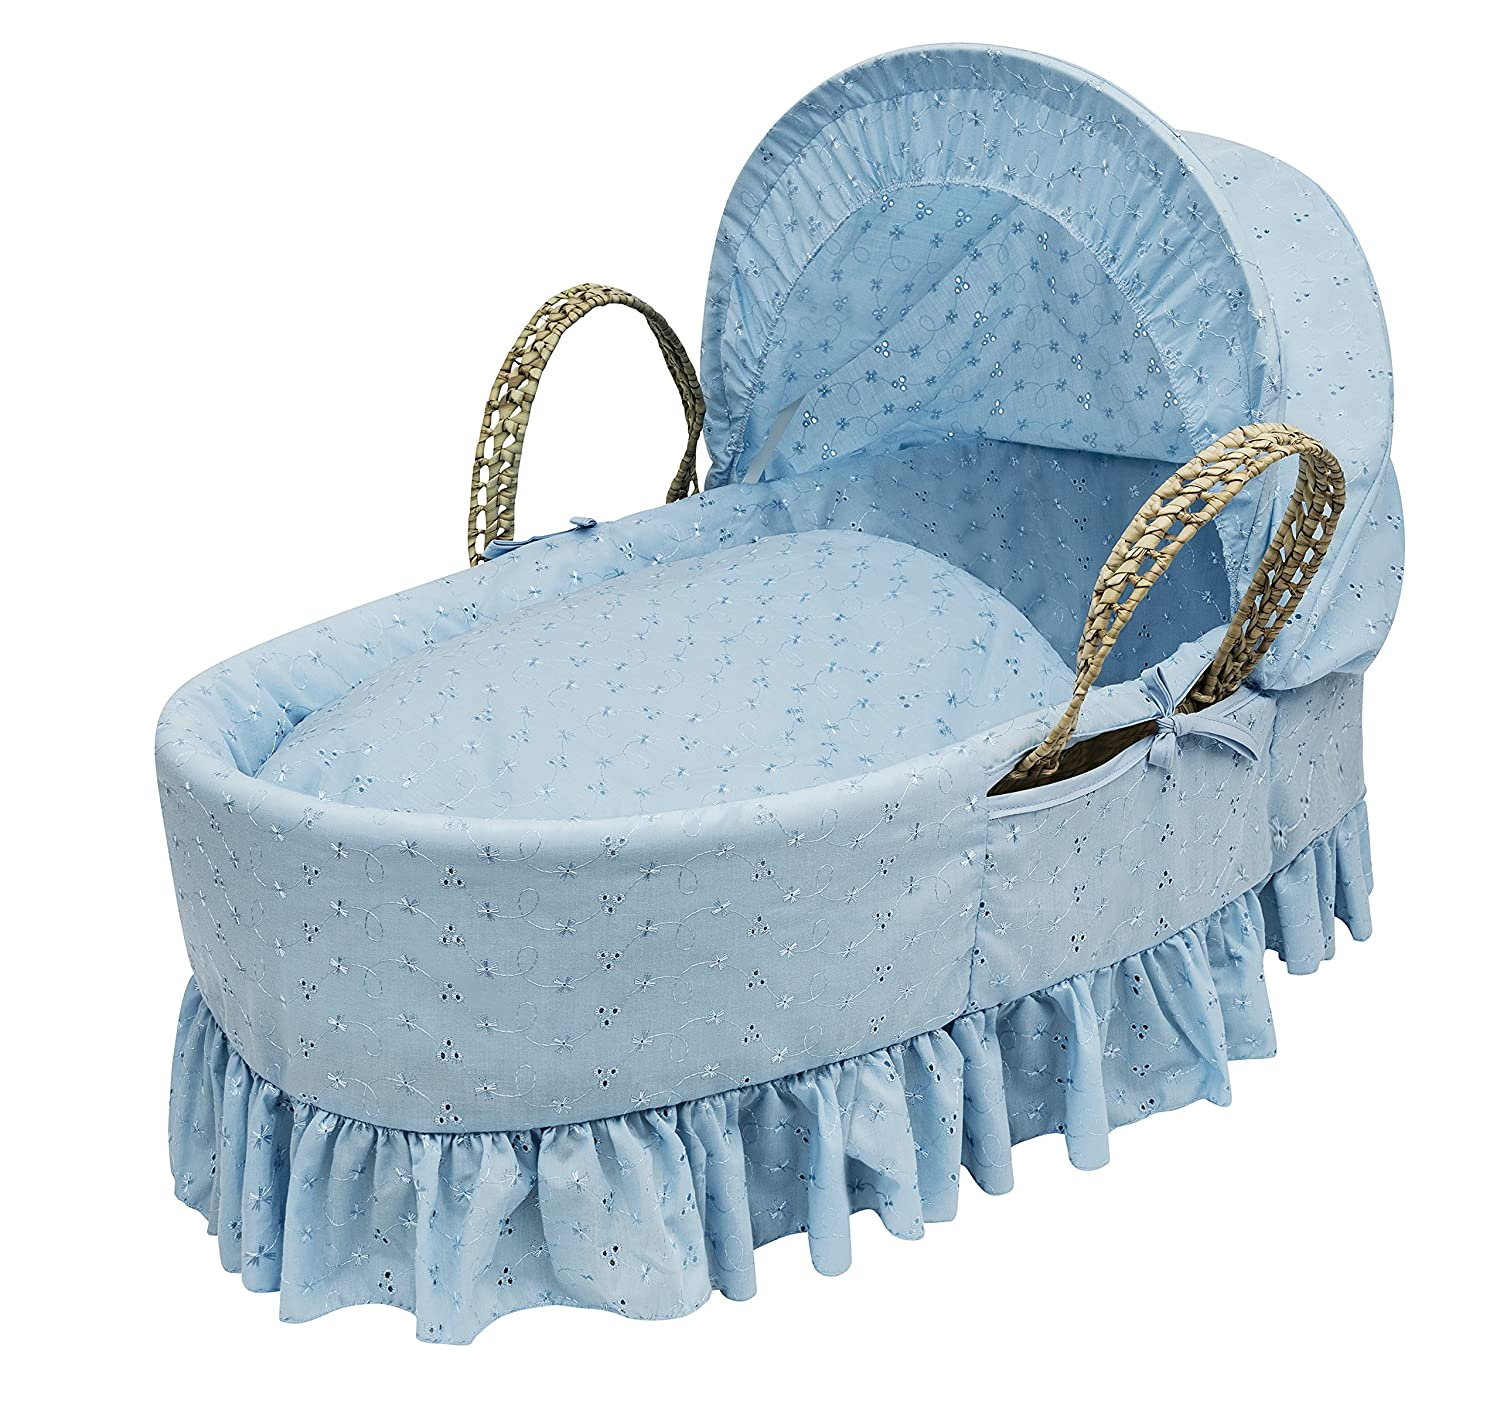 Kinder Valley Broderie Anglaise Moses Basket (Blue) BABLUEMOSES